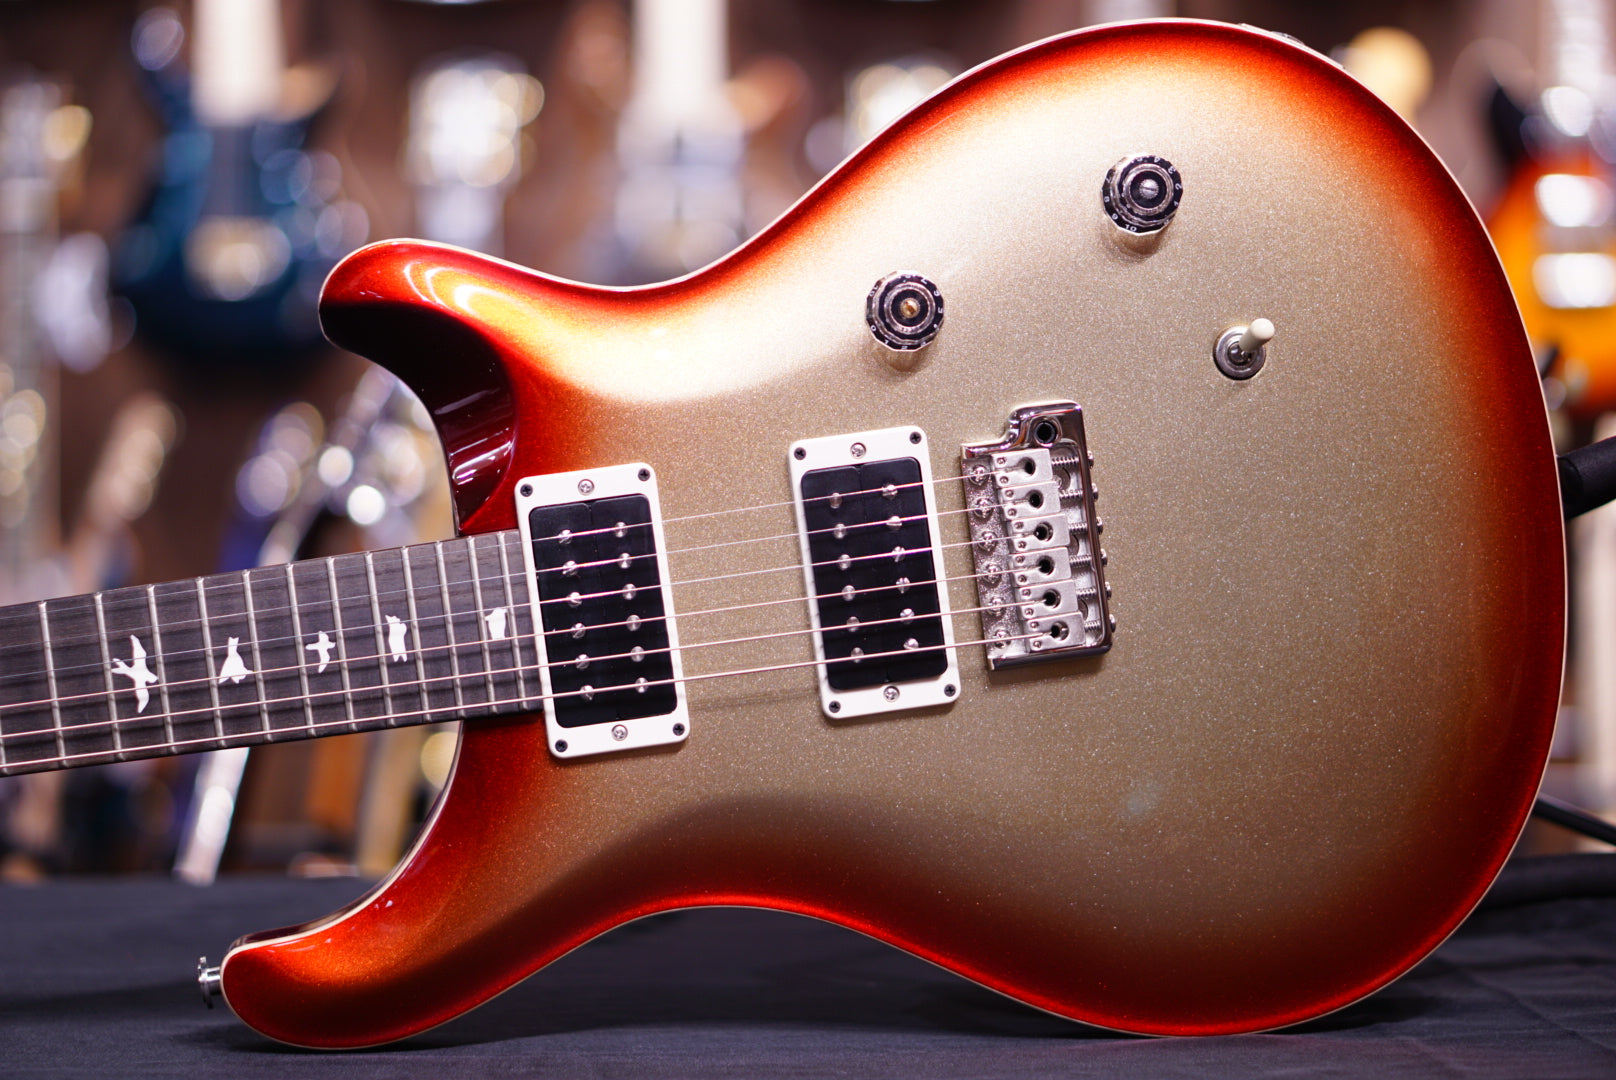 PRS CE24 Custom color 243459 - HIENDGUITAR   PRS GUITAR